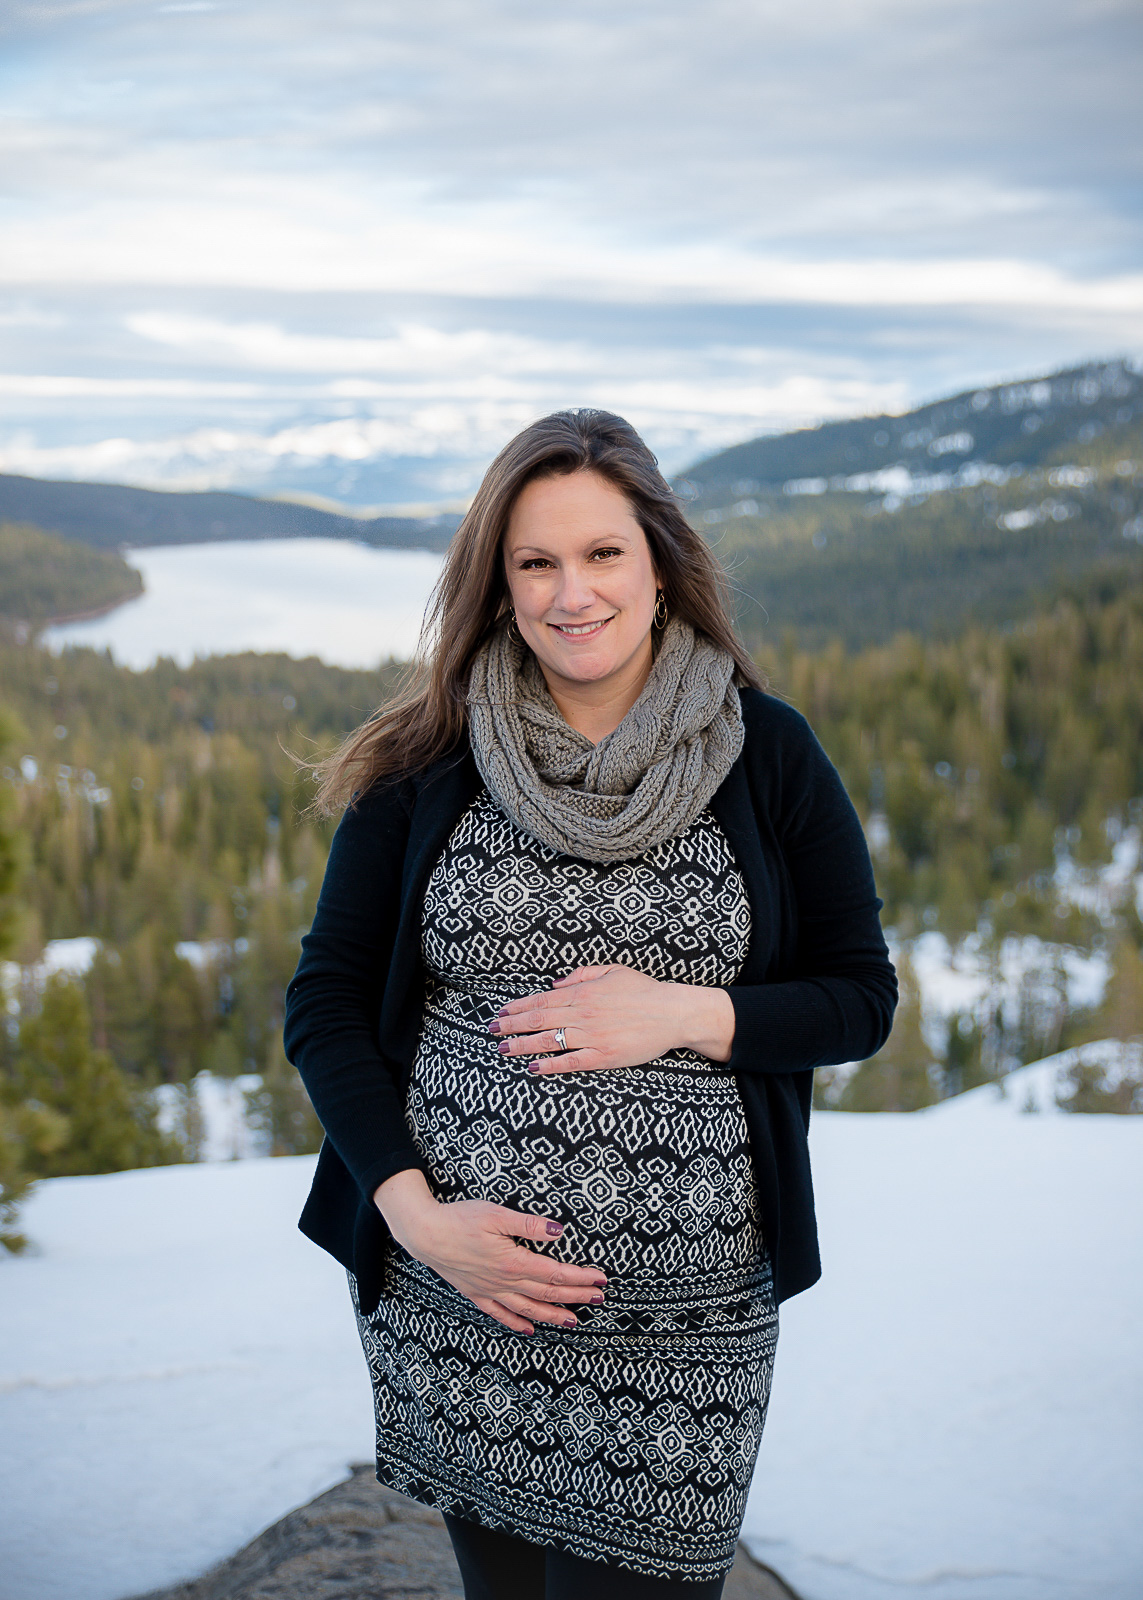 GoldbergMaternity11KelliPricePhotography_DonnerPass_Truckee_California.jpg